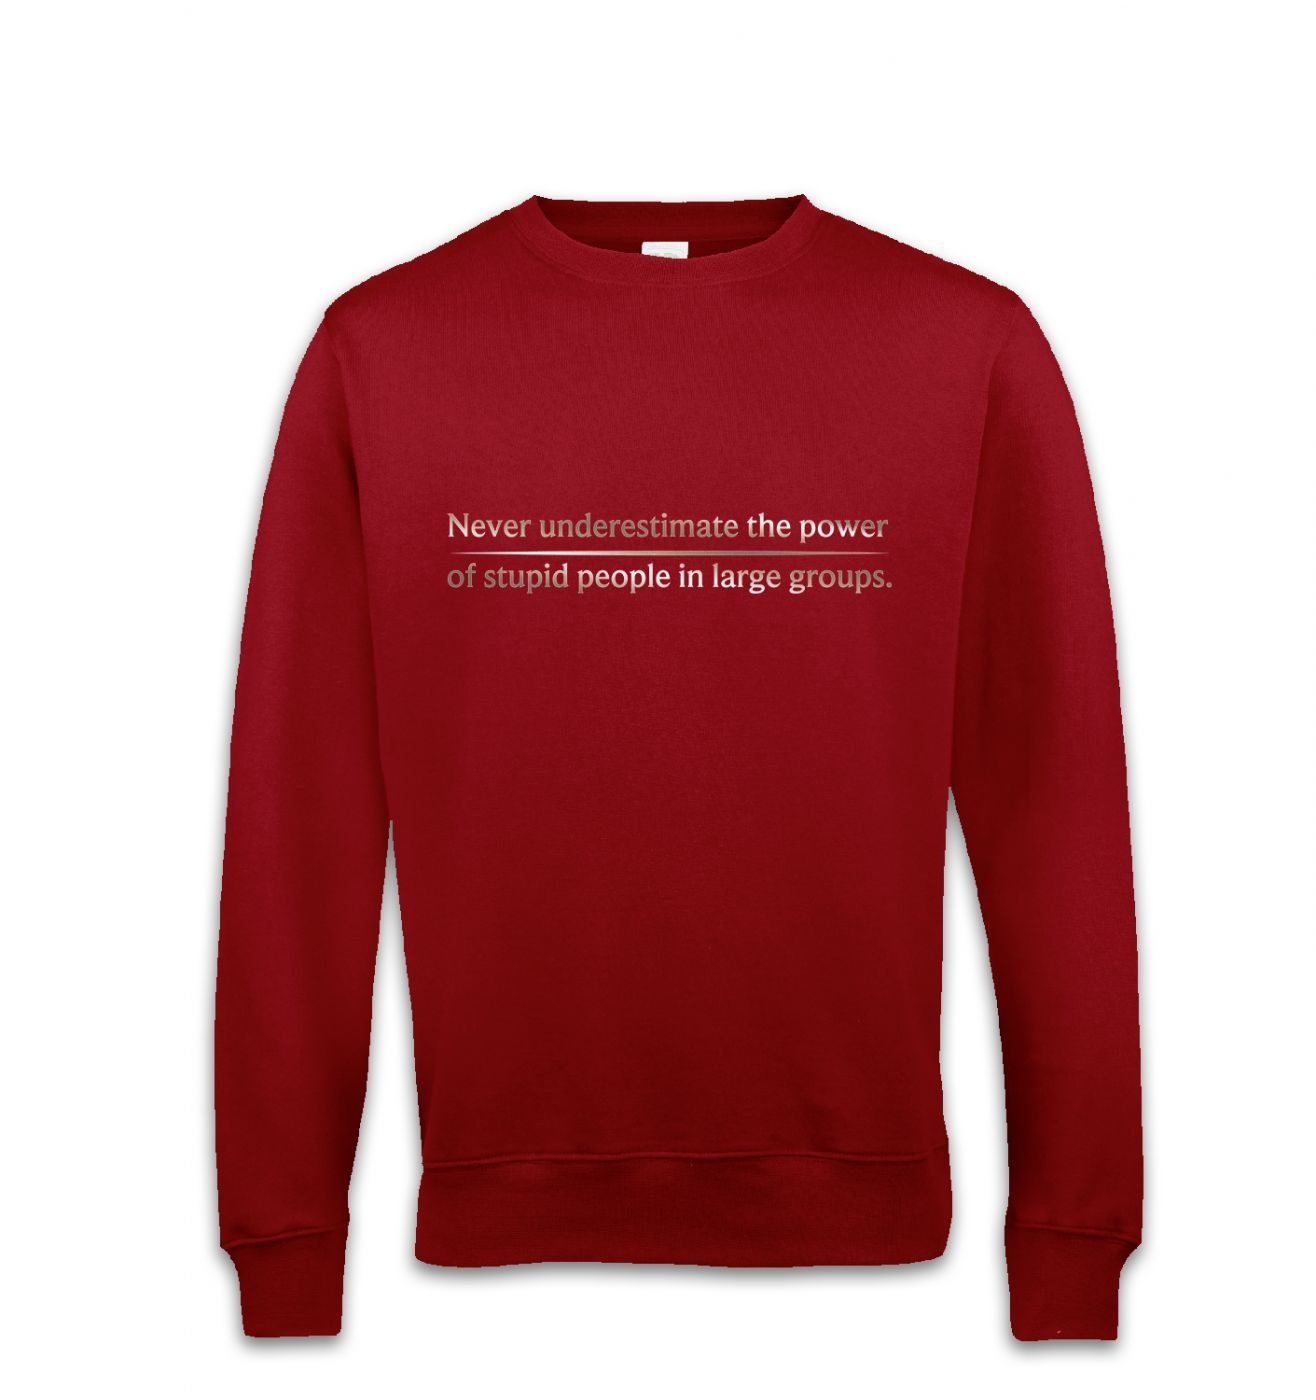 Power Of Stupid People sweatshirt